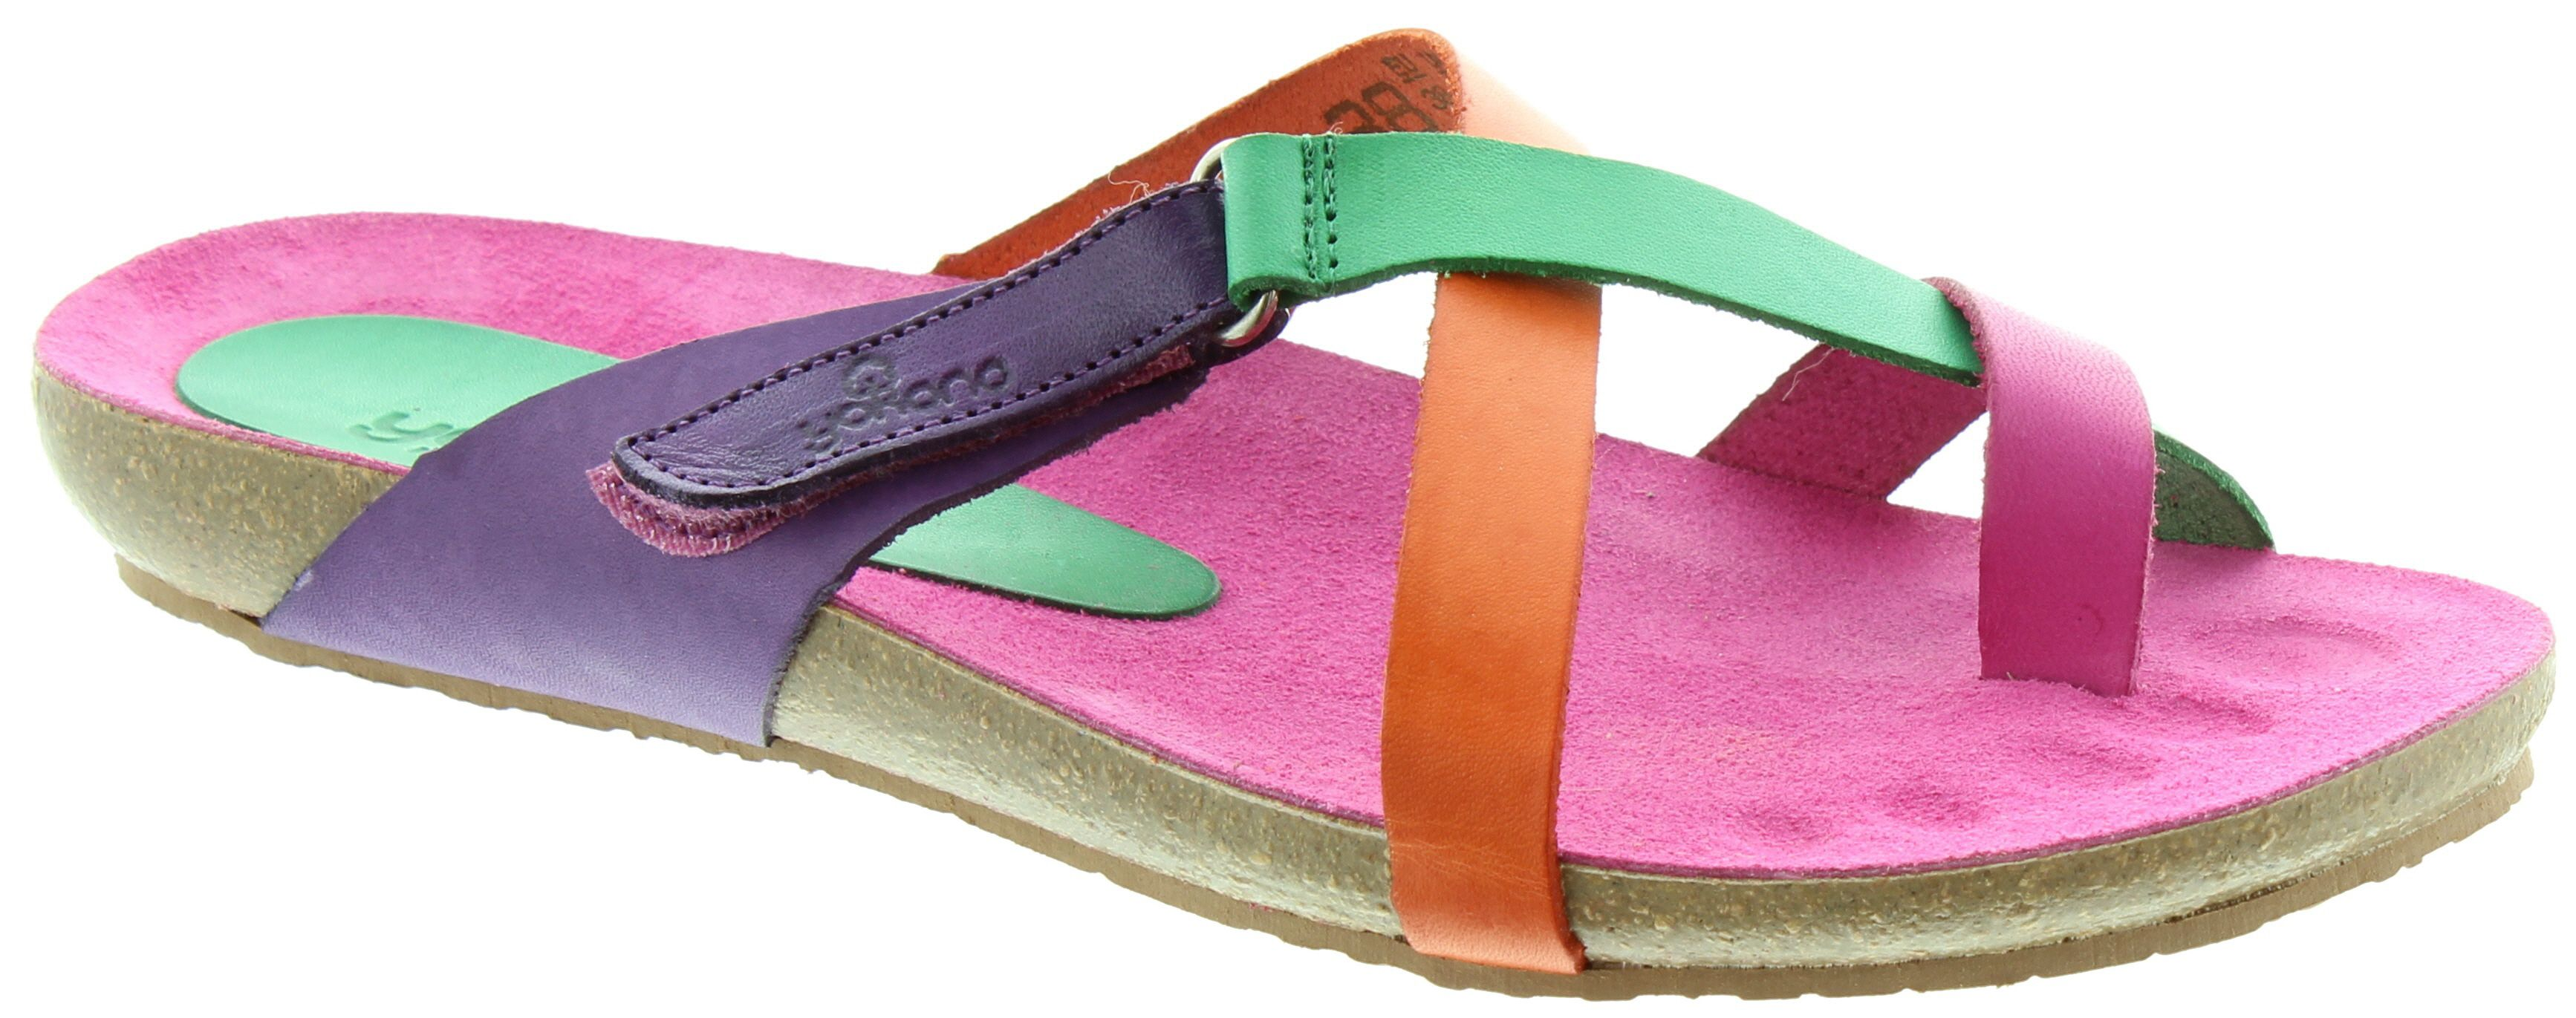 Shop the Yokono 581 Toe Loop Sandals in Pink Multi in Pink Multi at Jake  Shoes